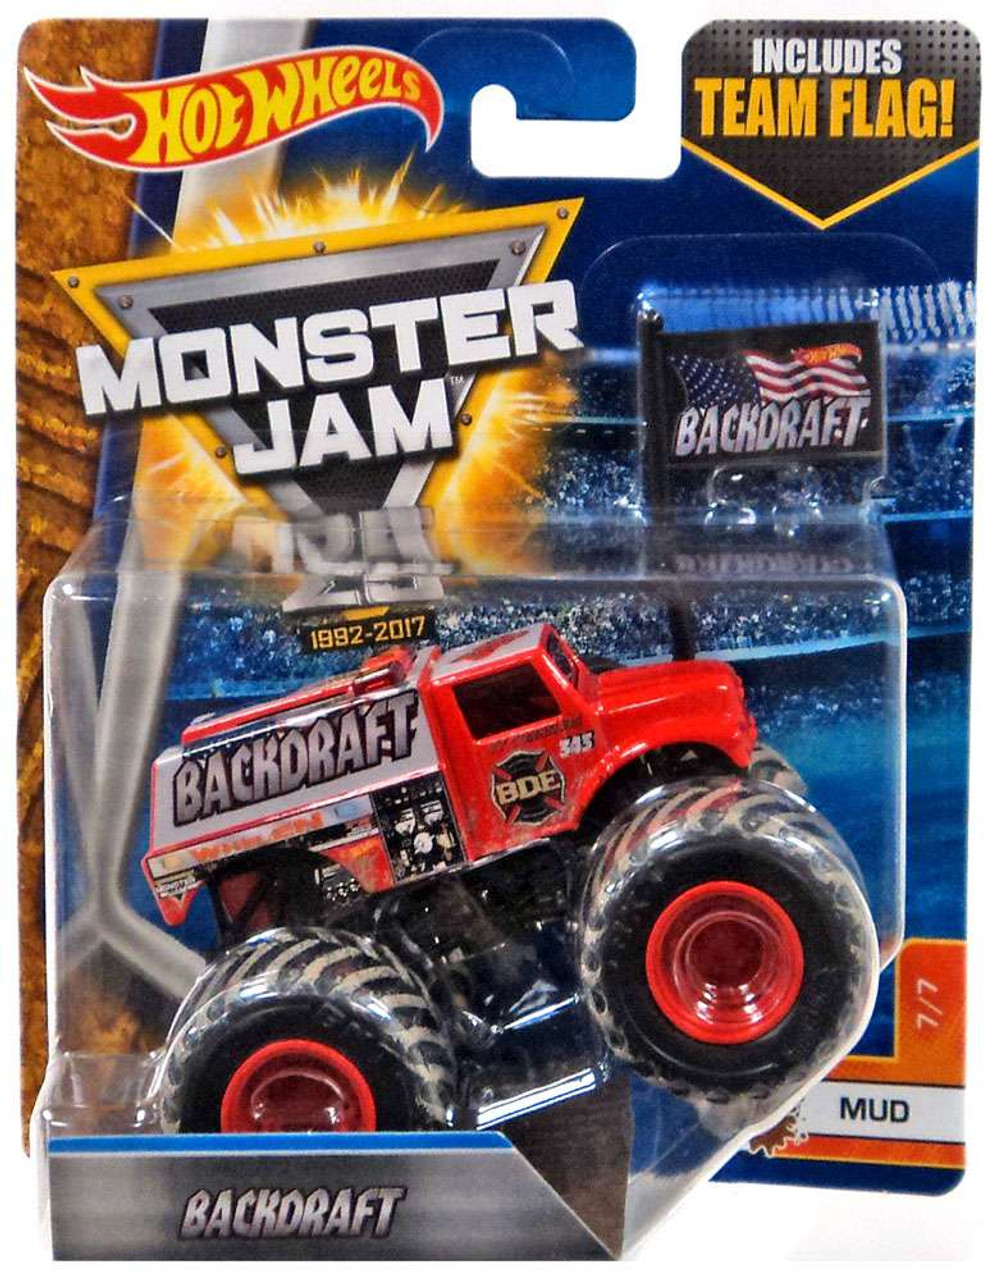 hot wheels monster jam 25 backdraft 155 diecast car 77 mud mattel toys toywiz. Black Bedroom Furniture Sets. Home Design Ideas